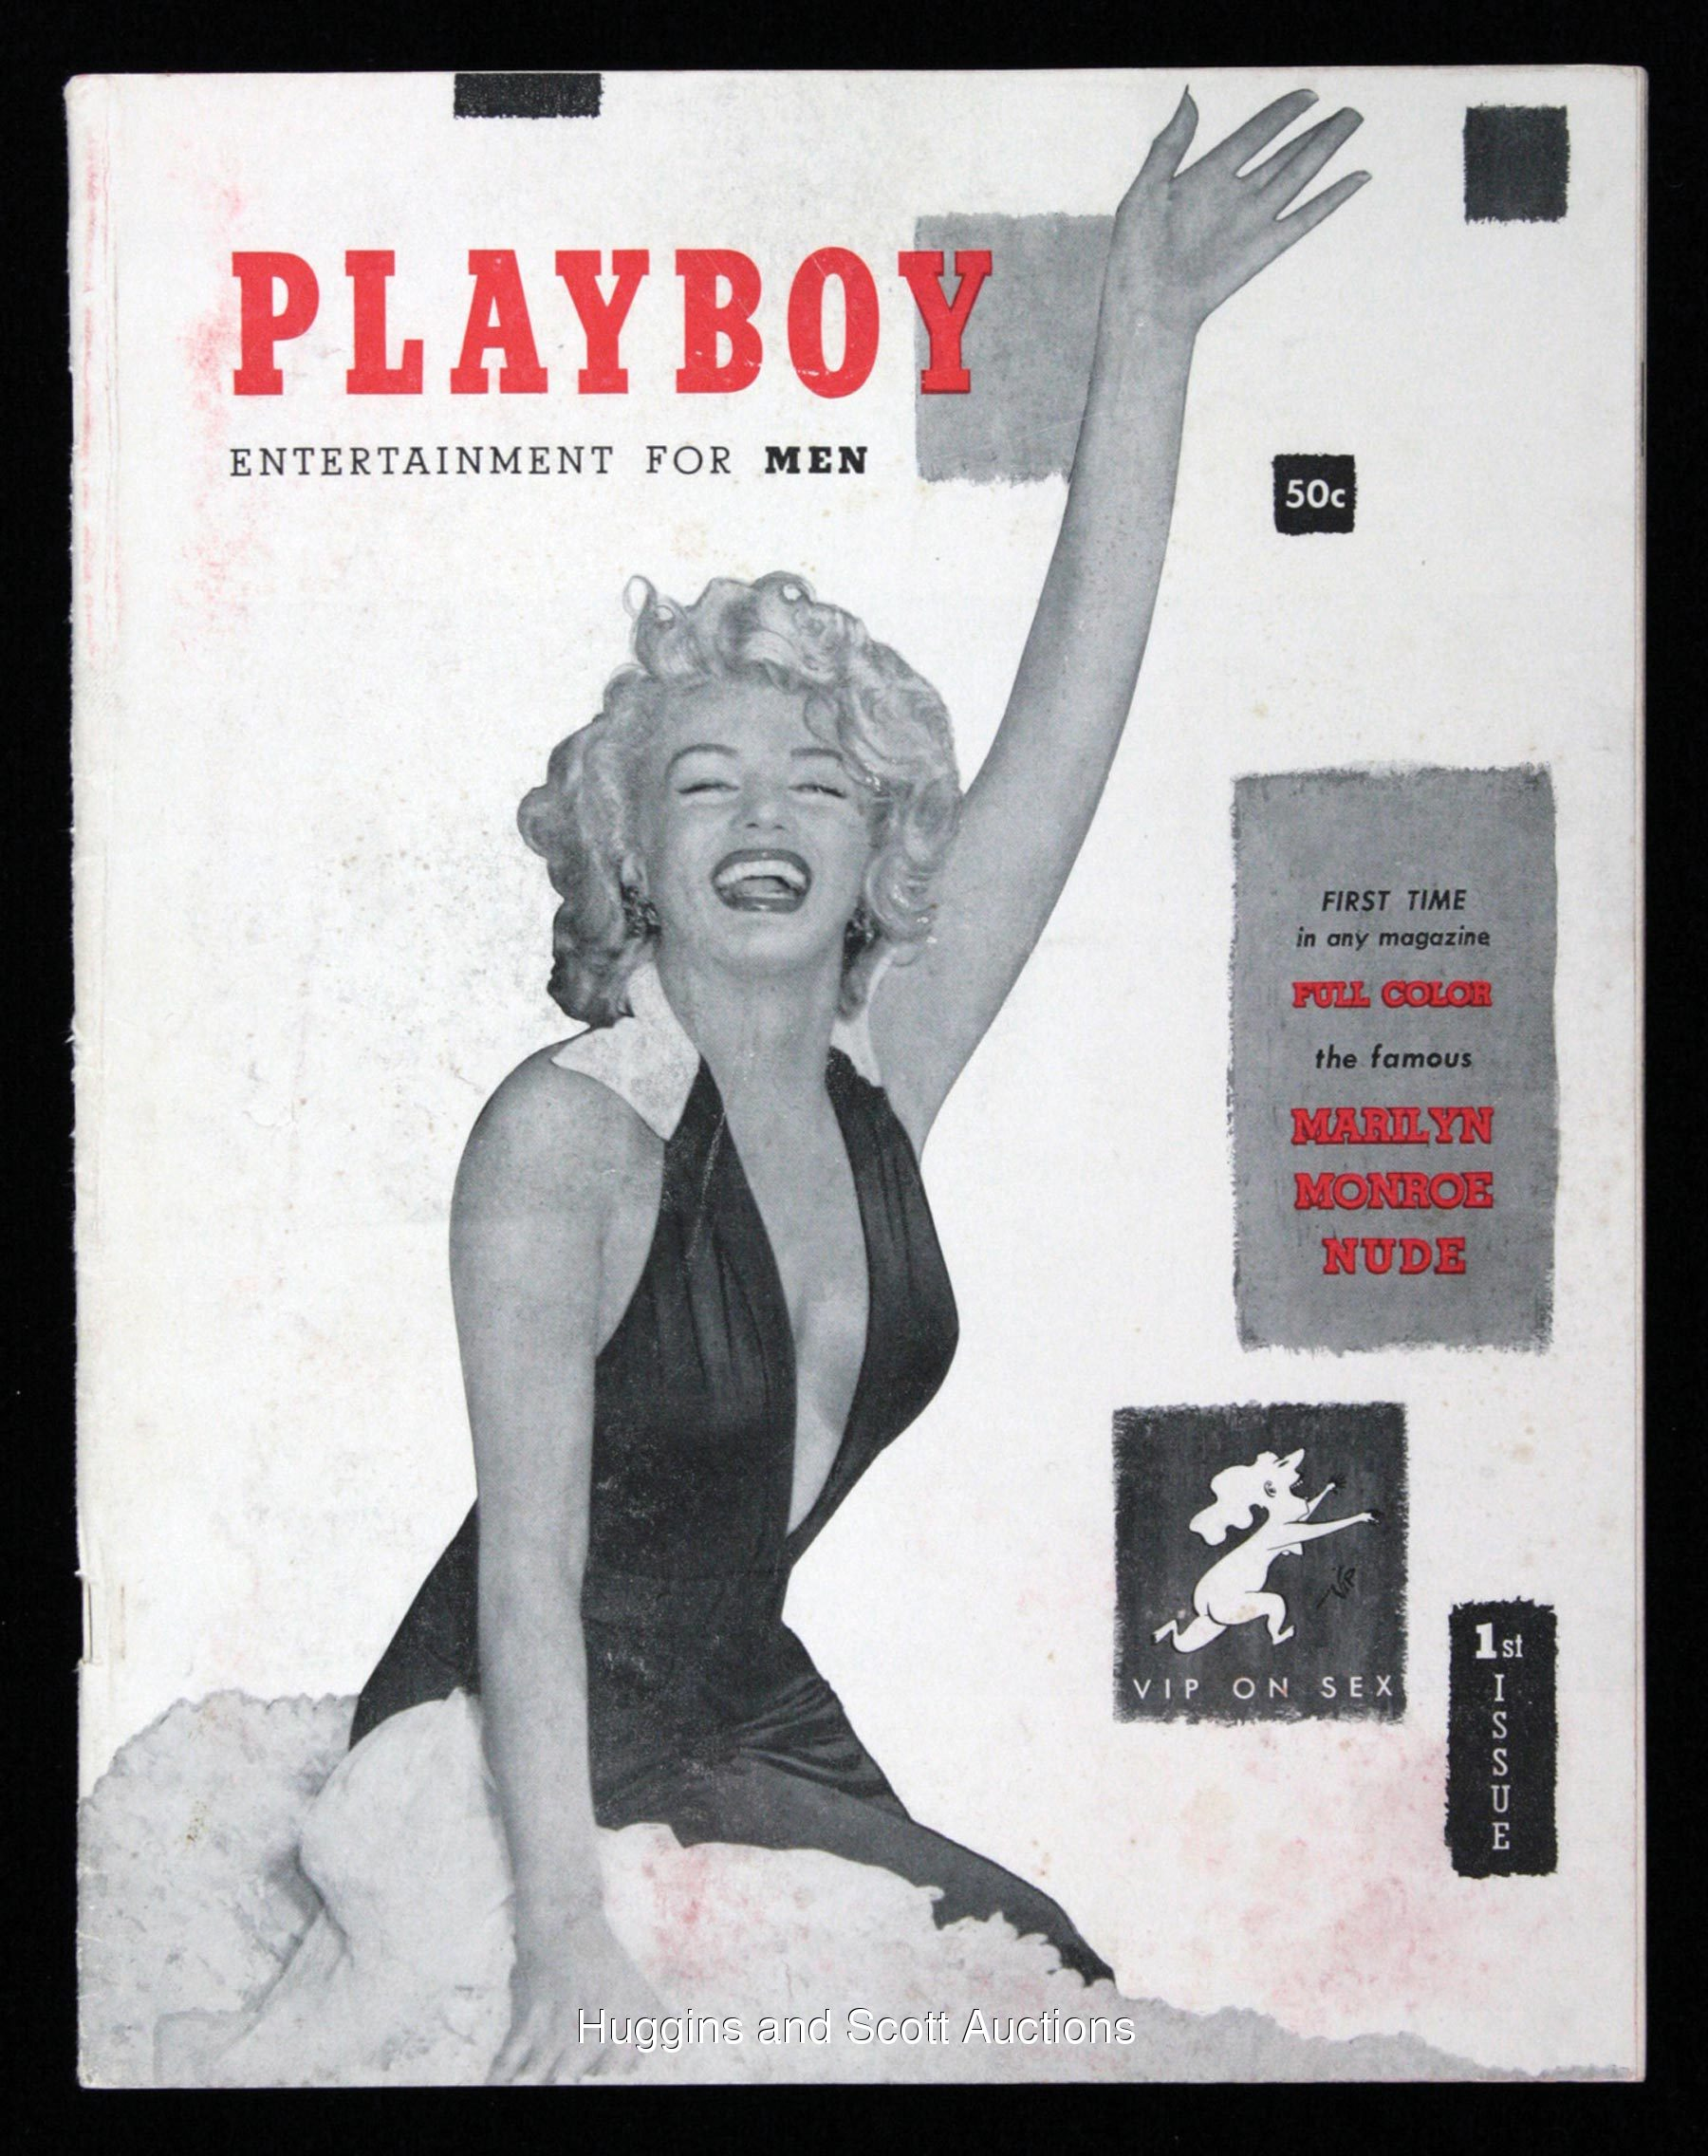 13880_playboy magazine covers